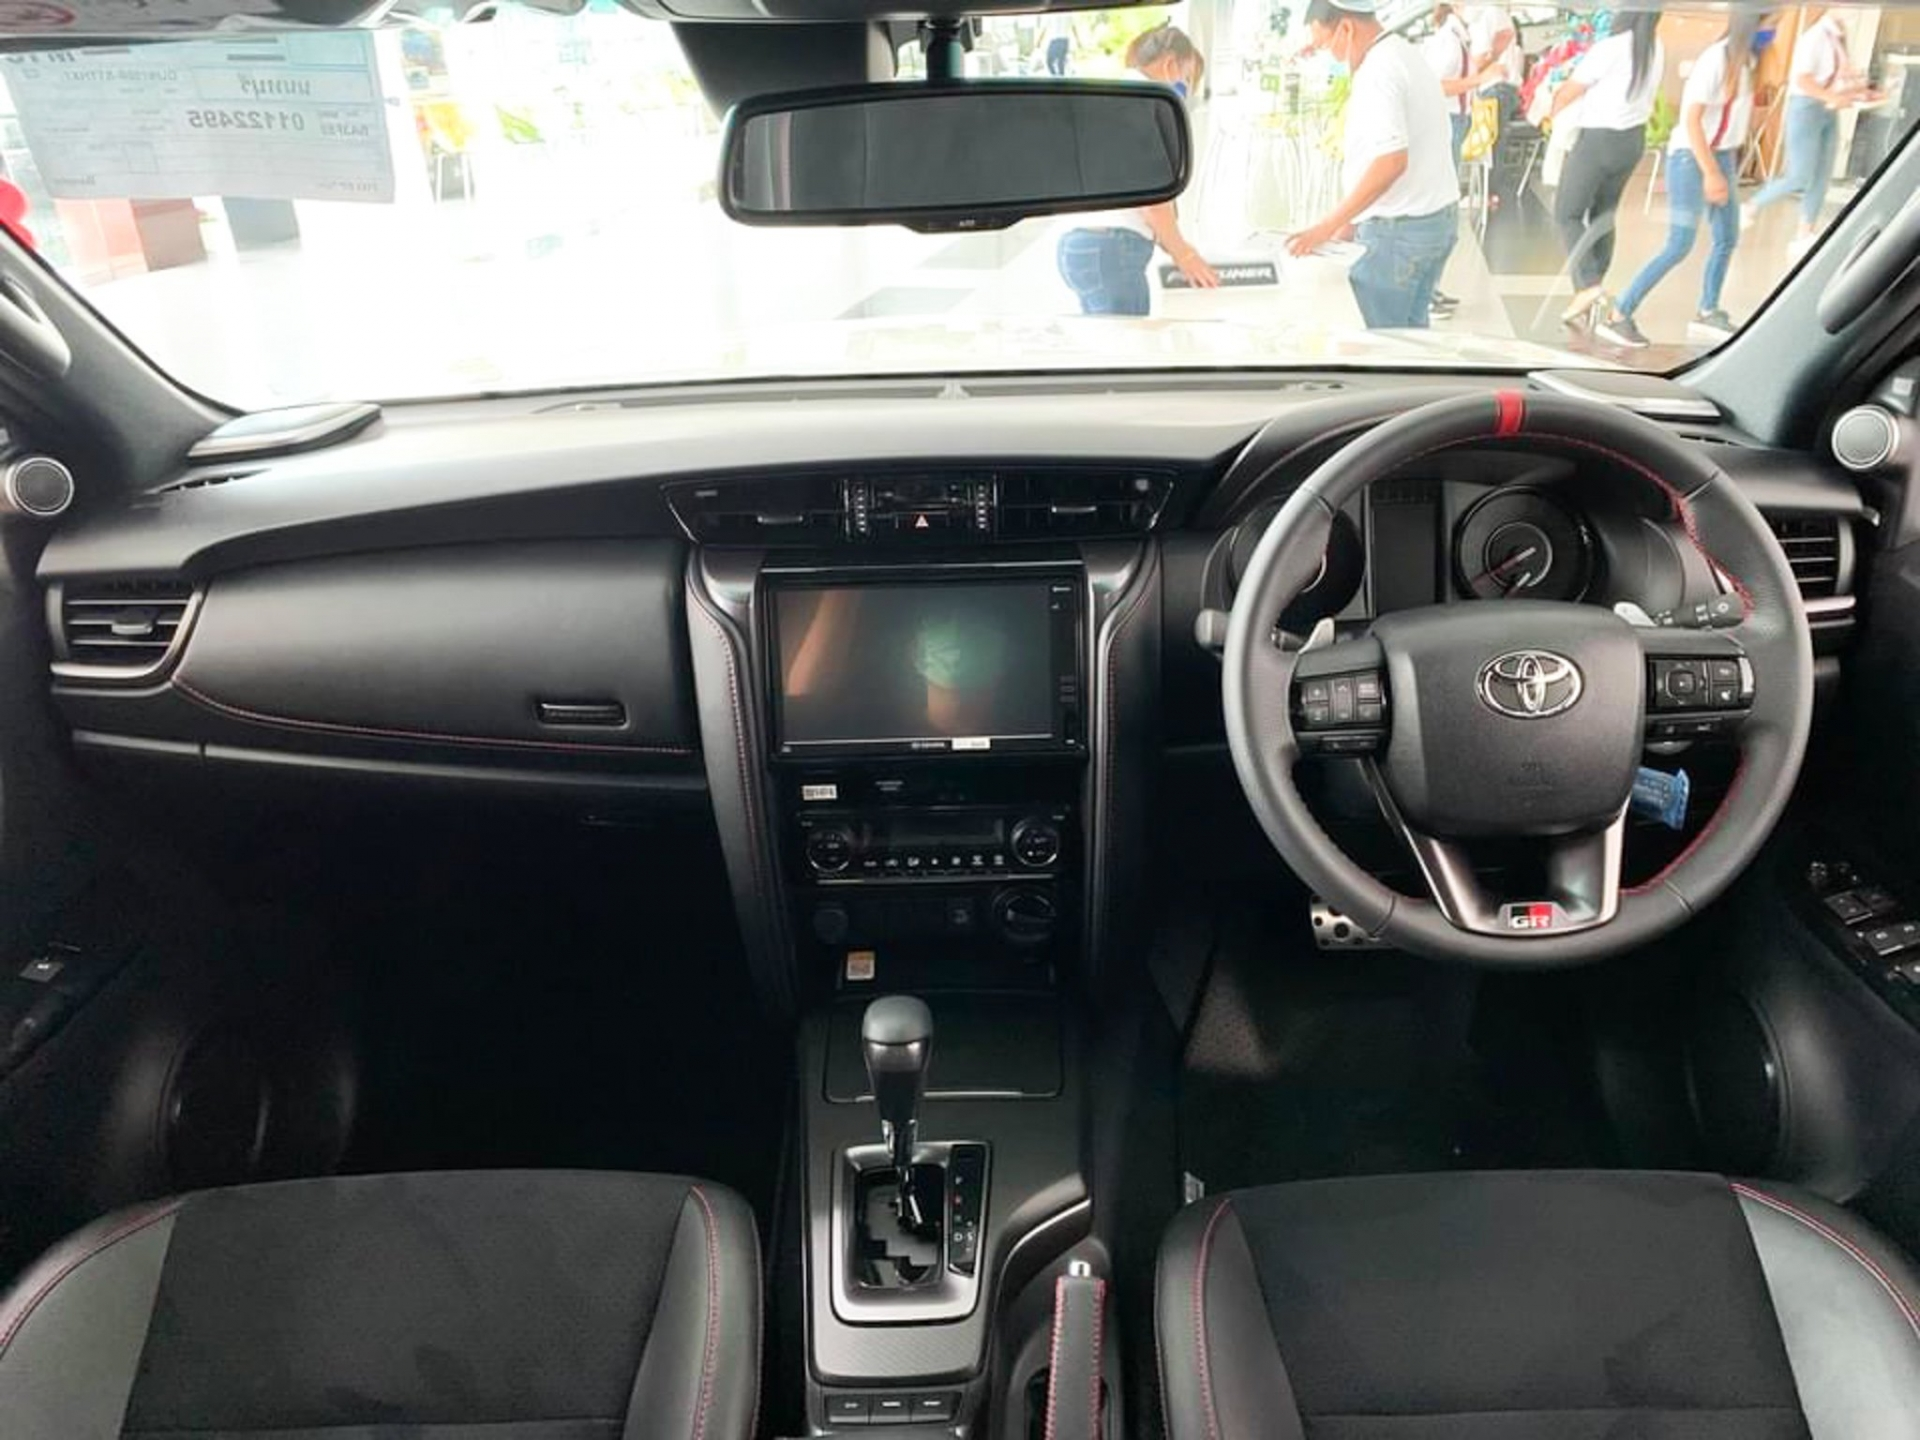 Preview Toyota Fortuner GR Sport 2022 priced at 1.3 billion at a Thai dealer, coming soon in Vietnam